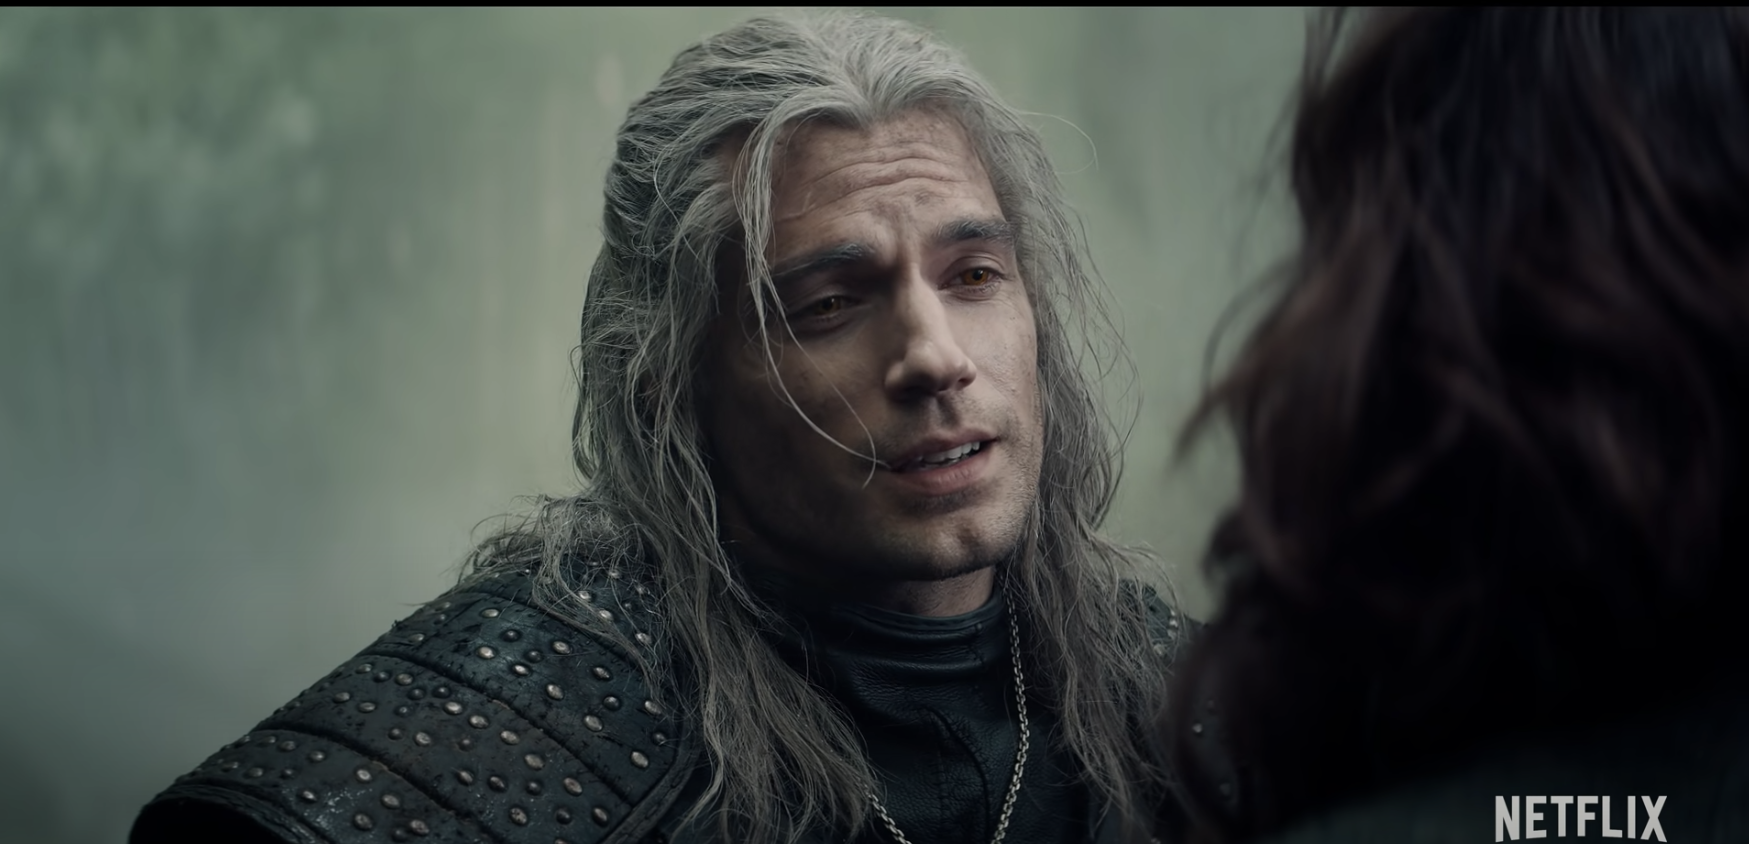 Henry Cavill The Witcher controversy